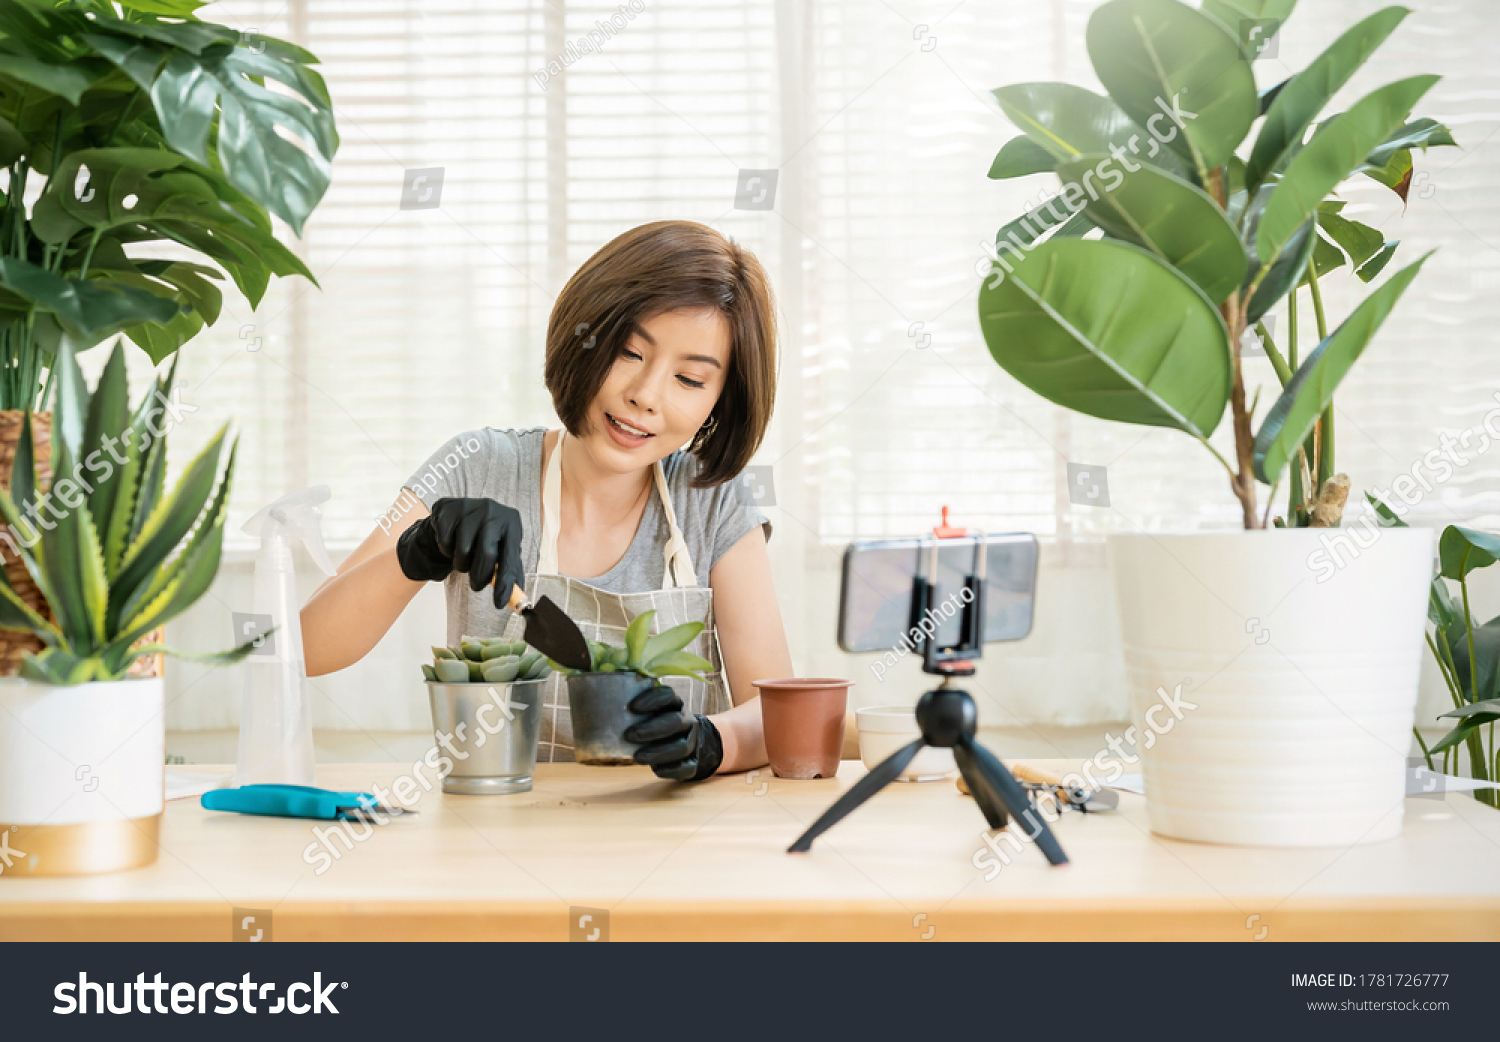 Portrait of young asian woman planting plant pot to fan channel record home video Online influencer girl in social media marketing live blog hobby lockdown coronavirus new normal sme small business #1781726777